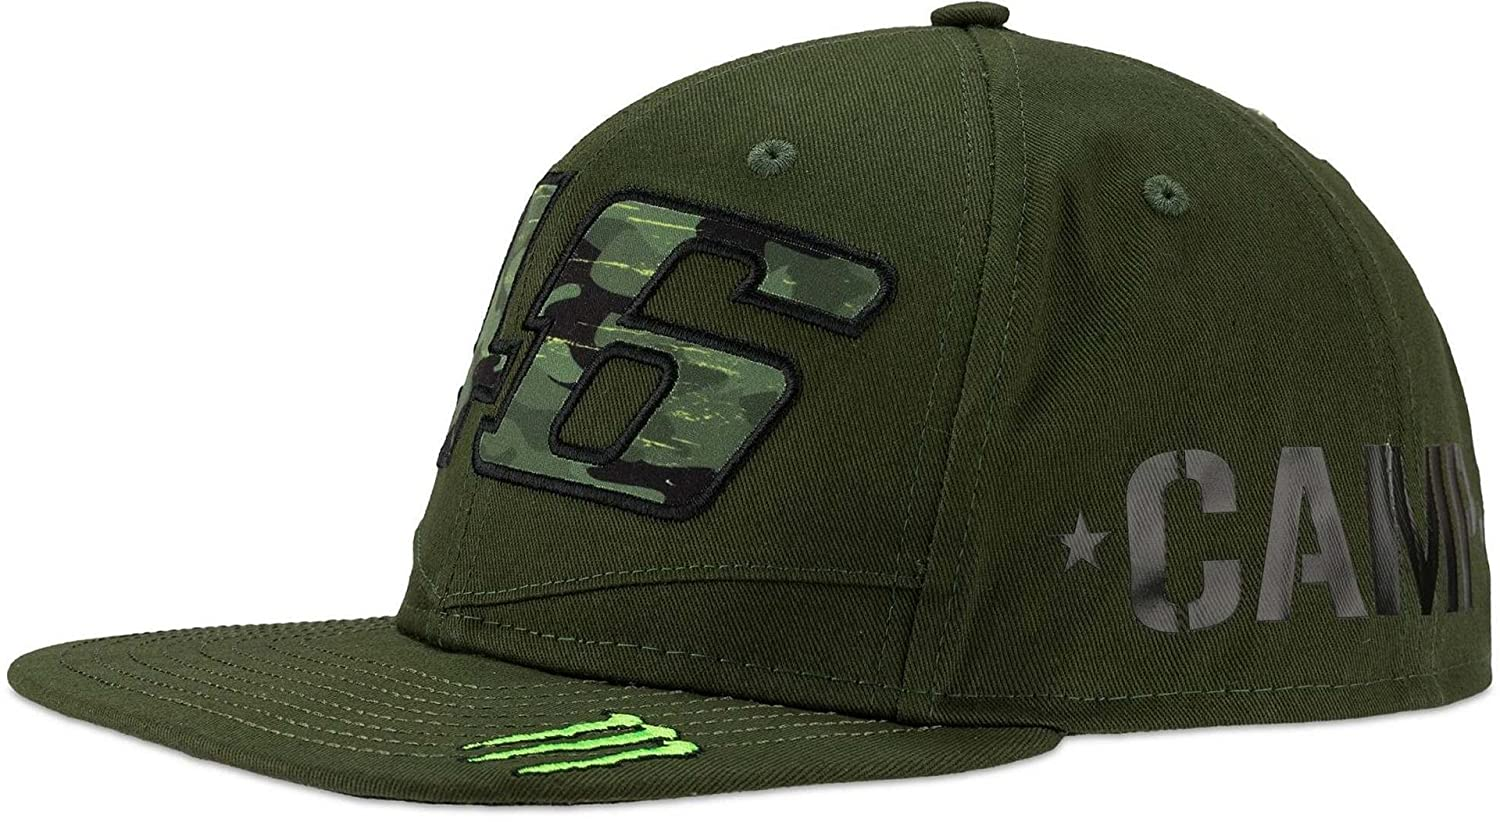 GORRA VR46 MONSTER DUAL CAMP MILITARY GREEN T-U: Amazon.es: Ropa y ...